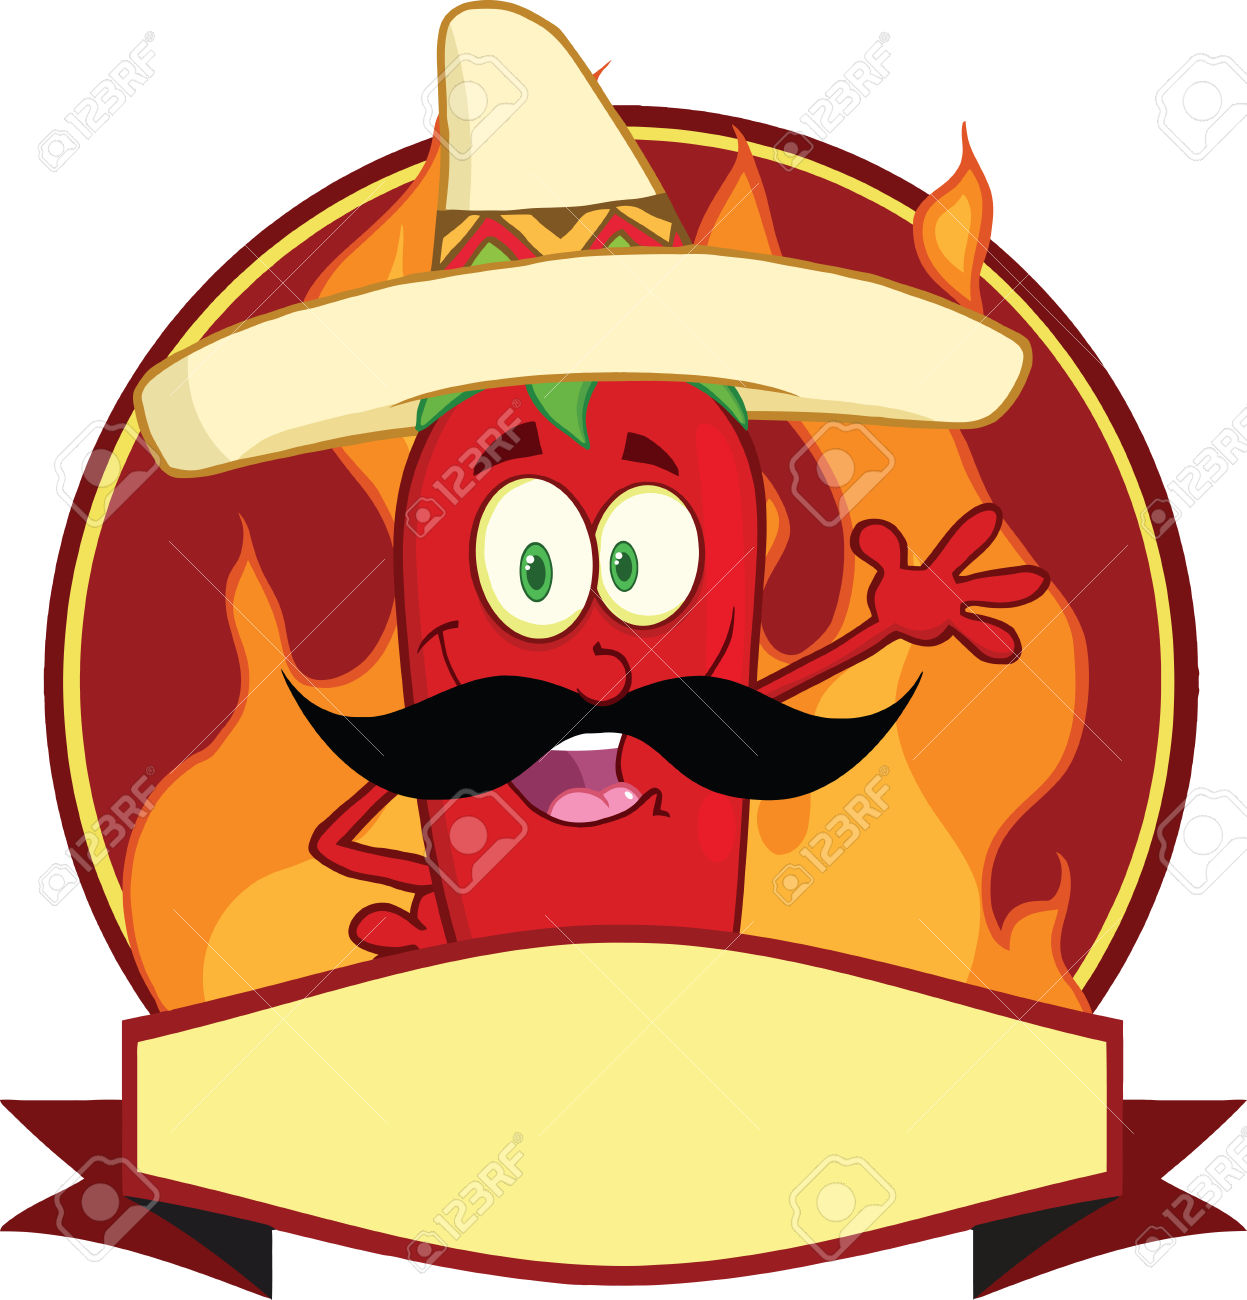 1247x1300 Mexican Chili Pepper Cartoon Mascot Logo Royalty Free Cliparts